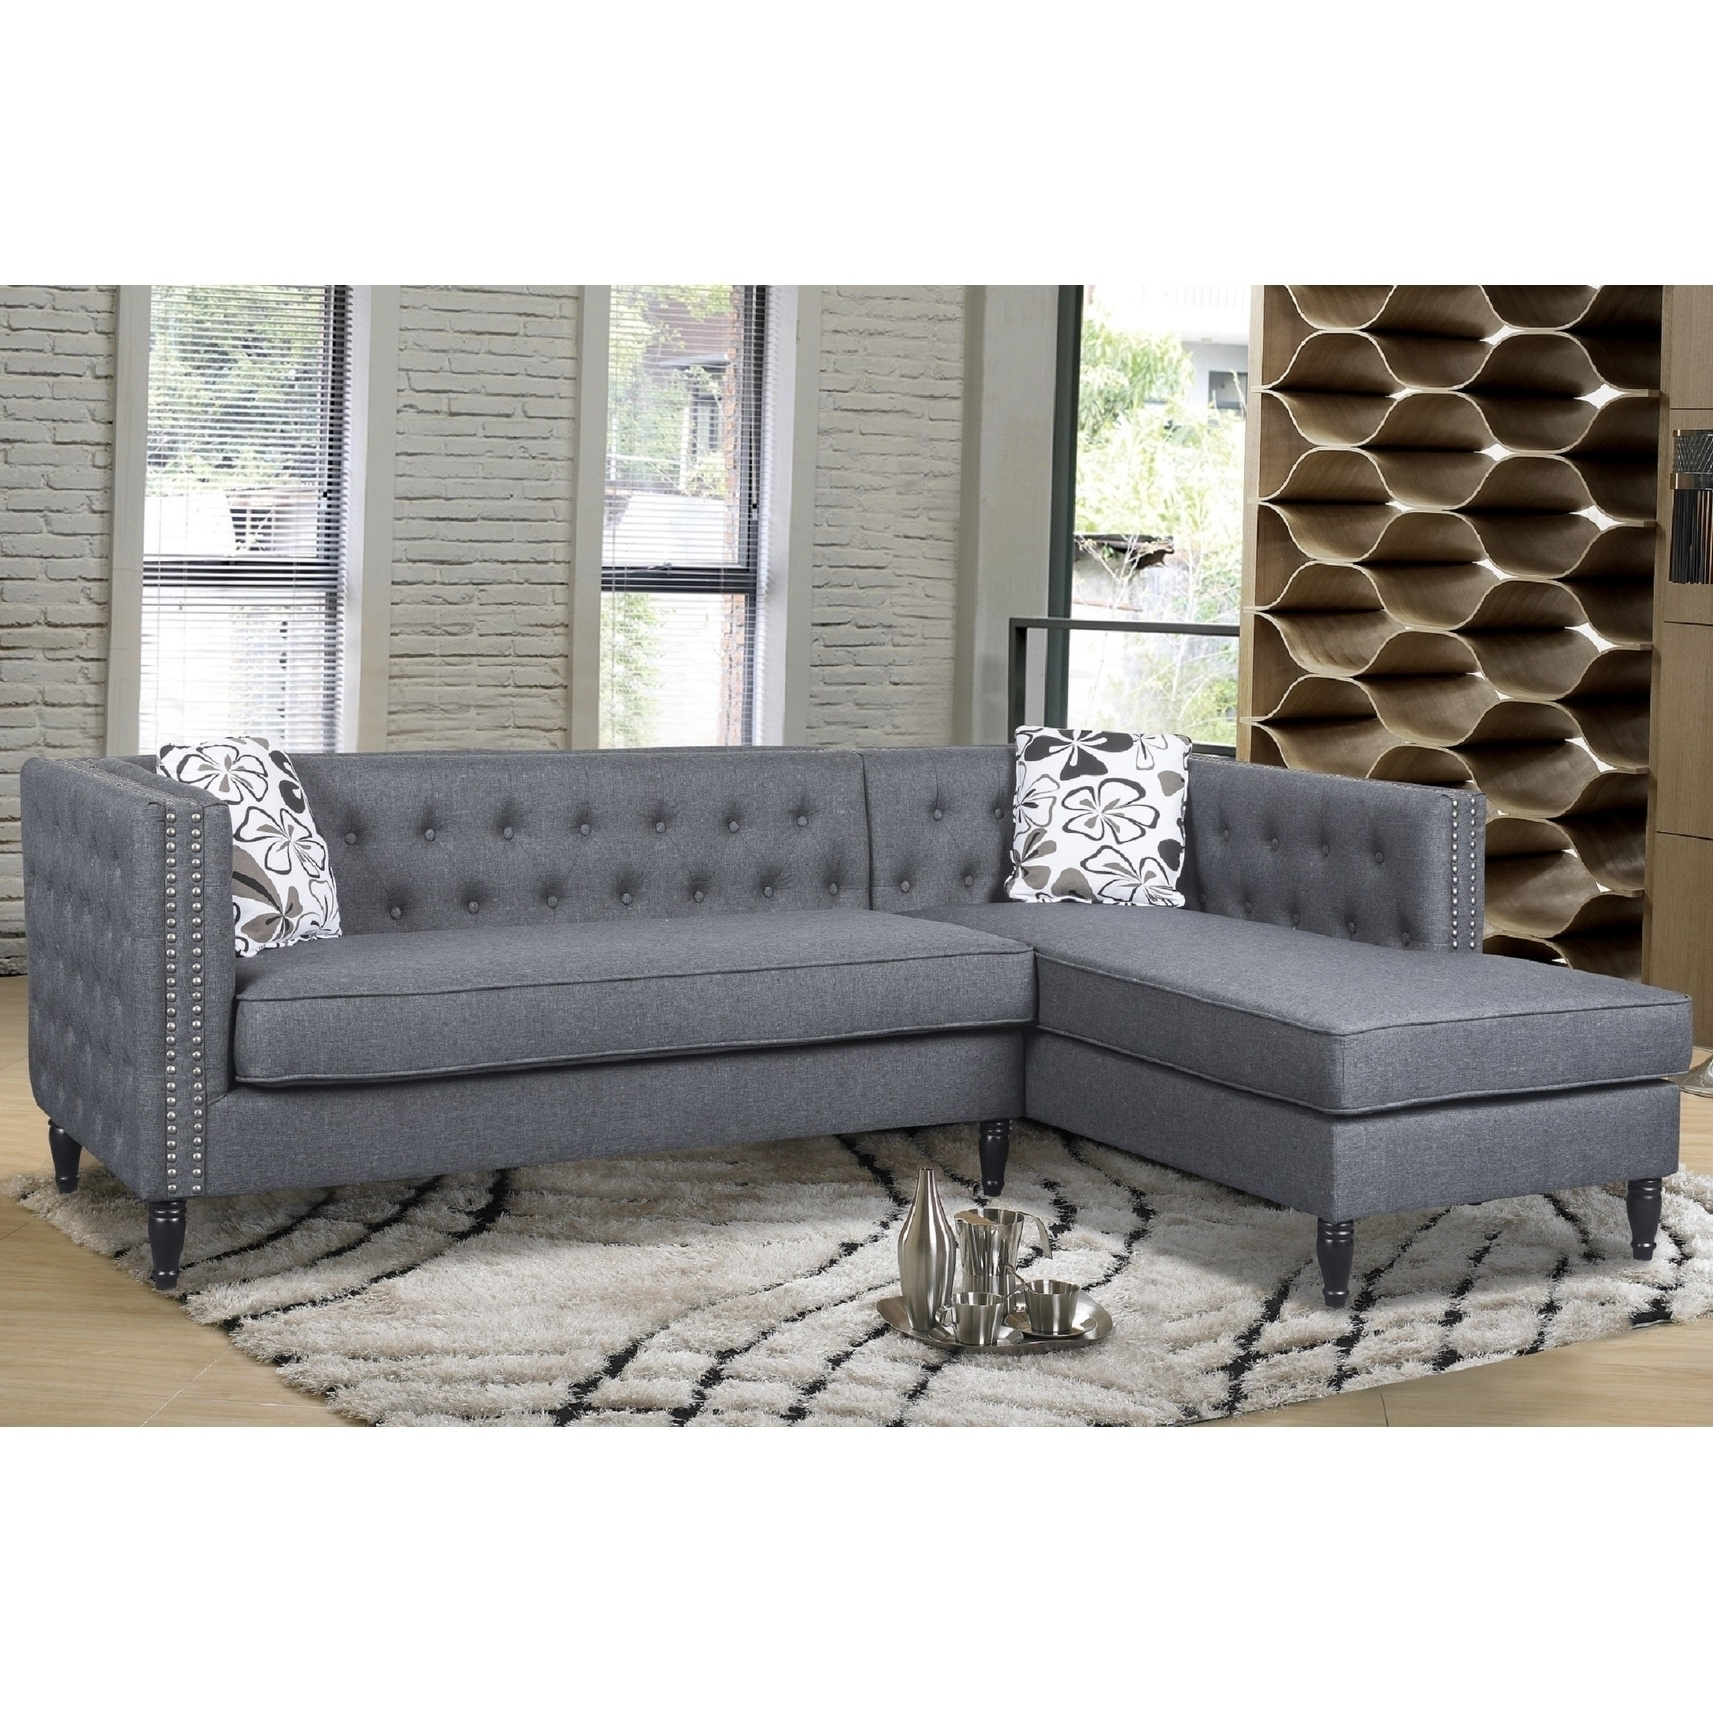 2018 Sectional Sofas With Nailhead Trim With Annie Tufted Nailhead Trim Left Facing Sectional Sofa (View 1 of 20)